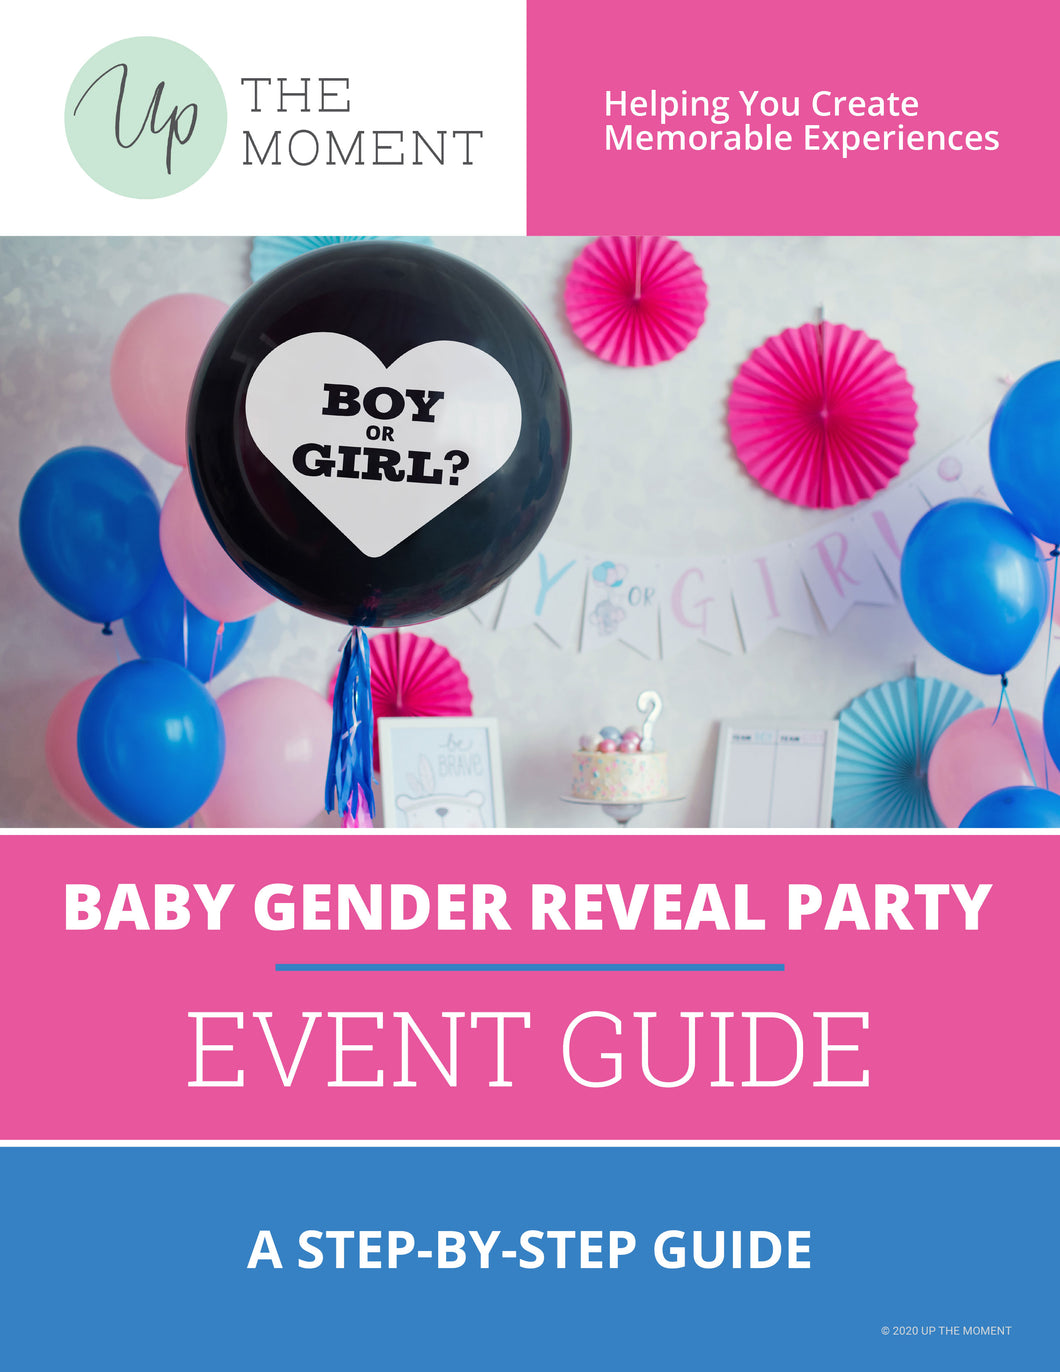 Baby Gender Reveal Party EVENT GUIDE